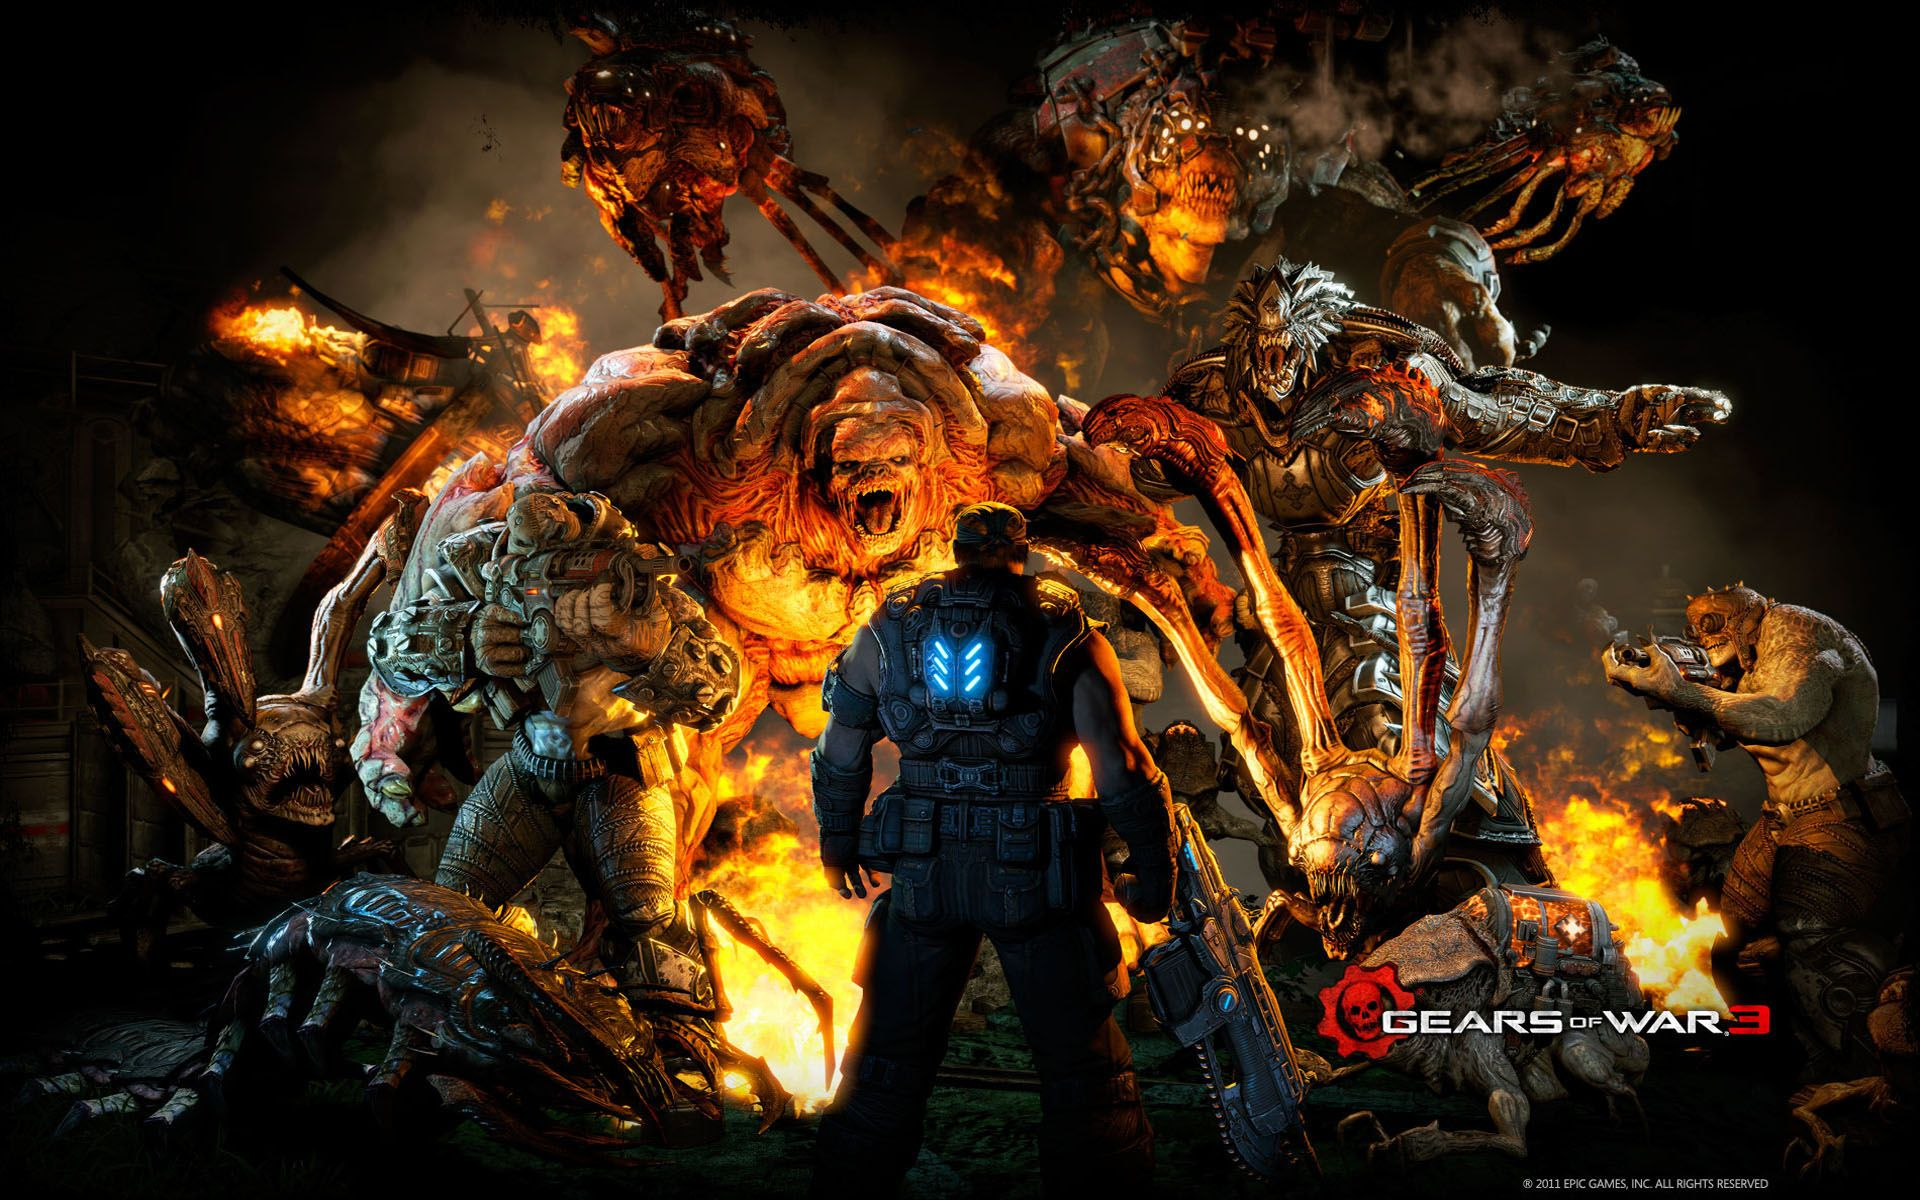 Gears Of War 3 Mission Wallpapers Hd Gears Of War 3 Gears Of War